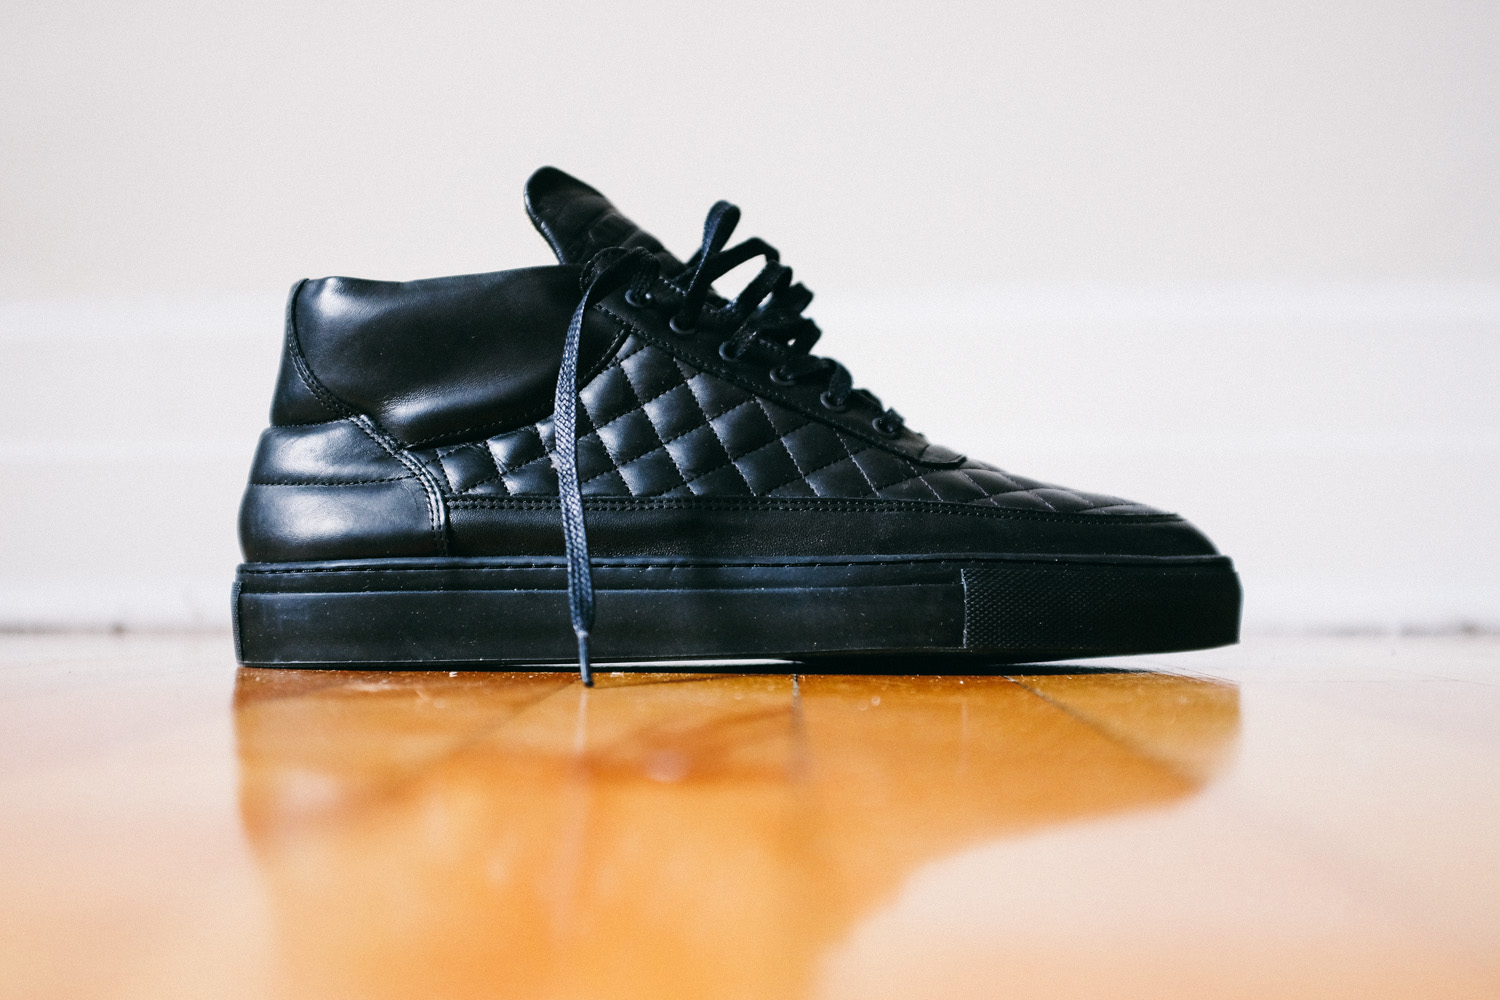 f442a953a good Top 10 Sneakers of 2014 Pete Williams Highsnobiety -  www.b.renovallantas.com.mx